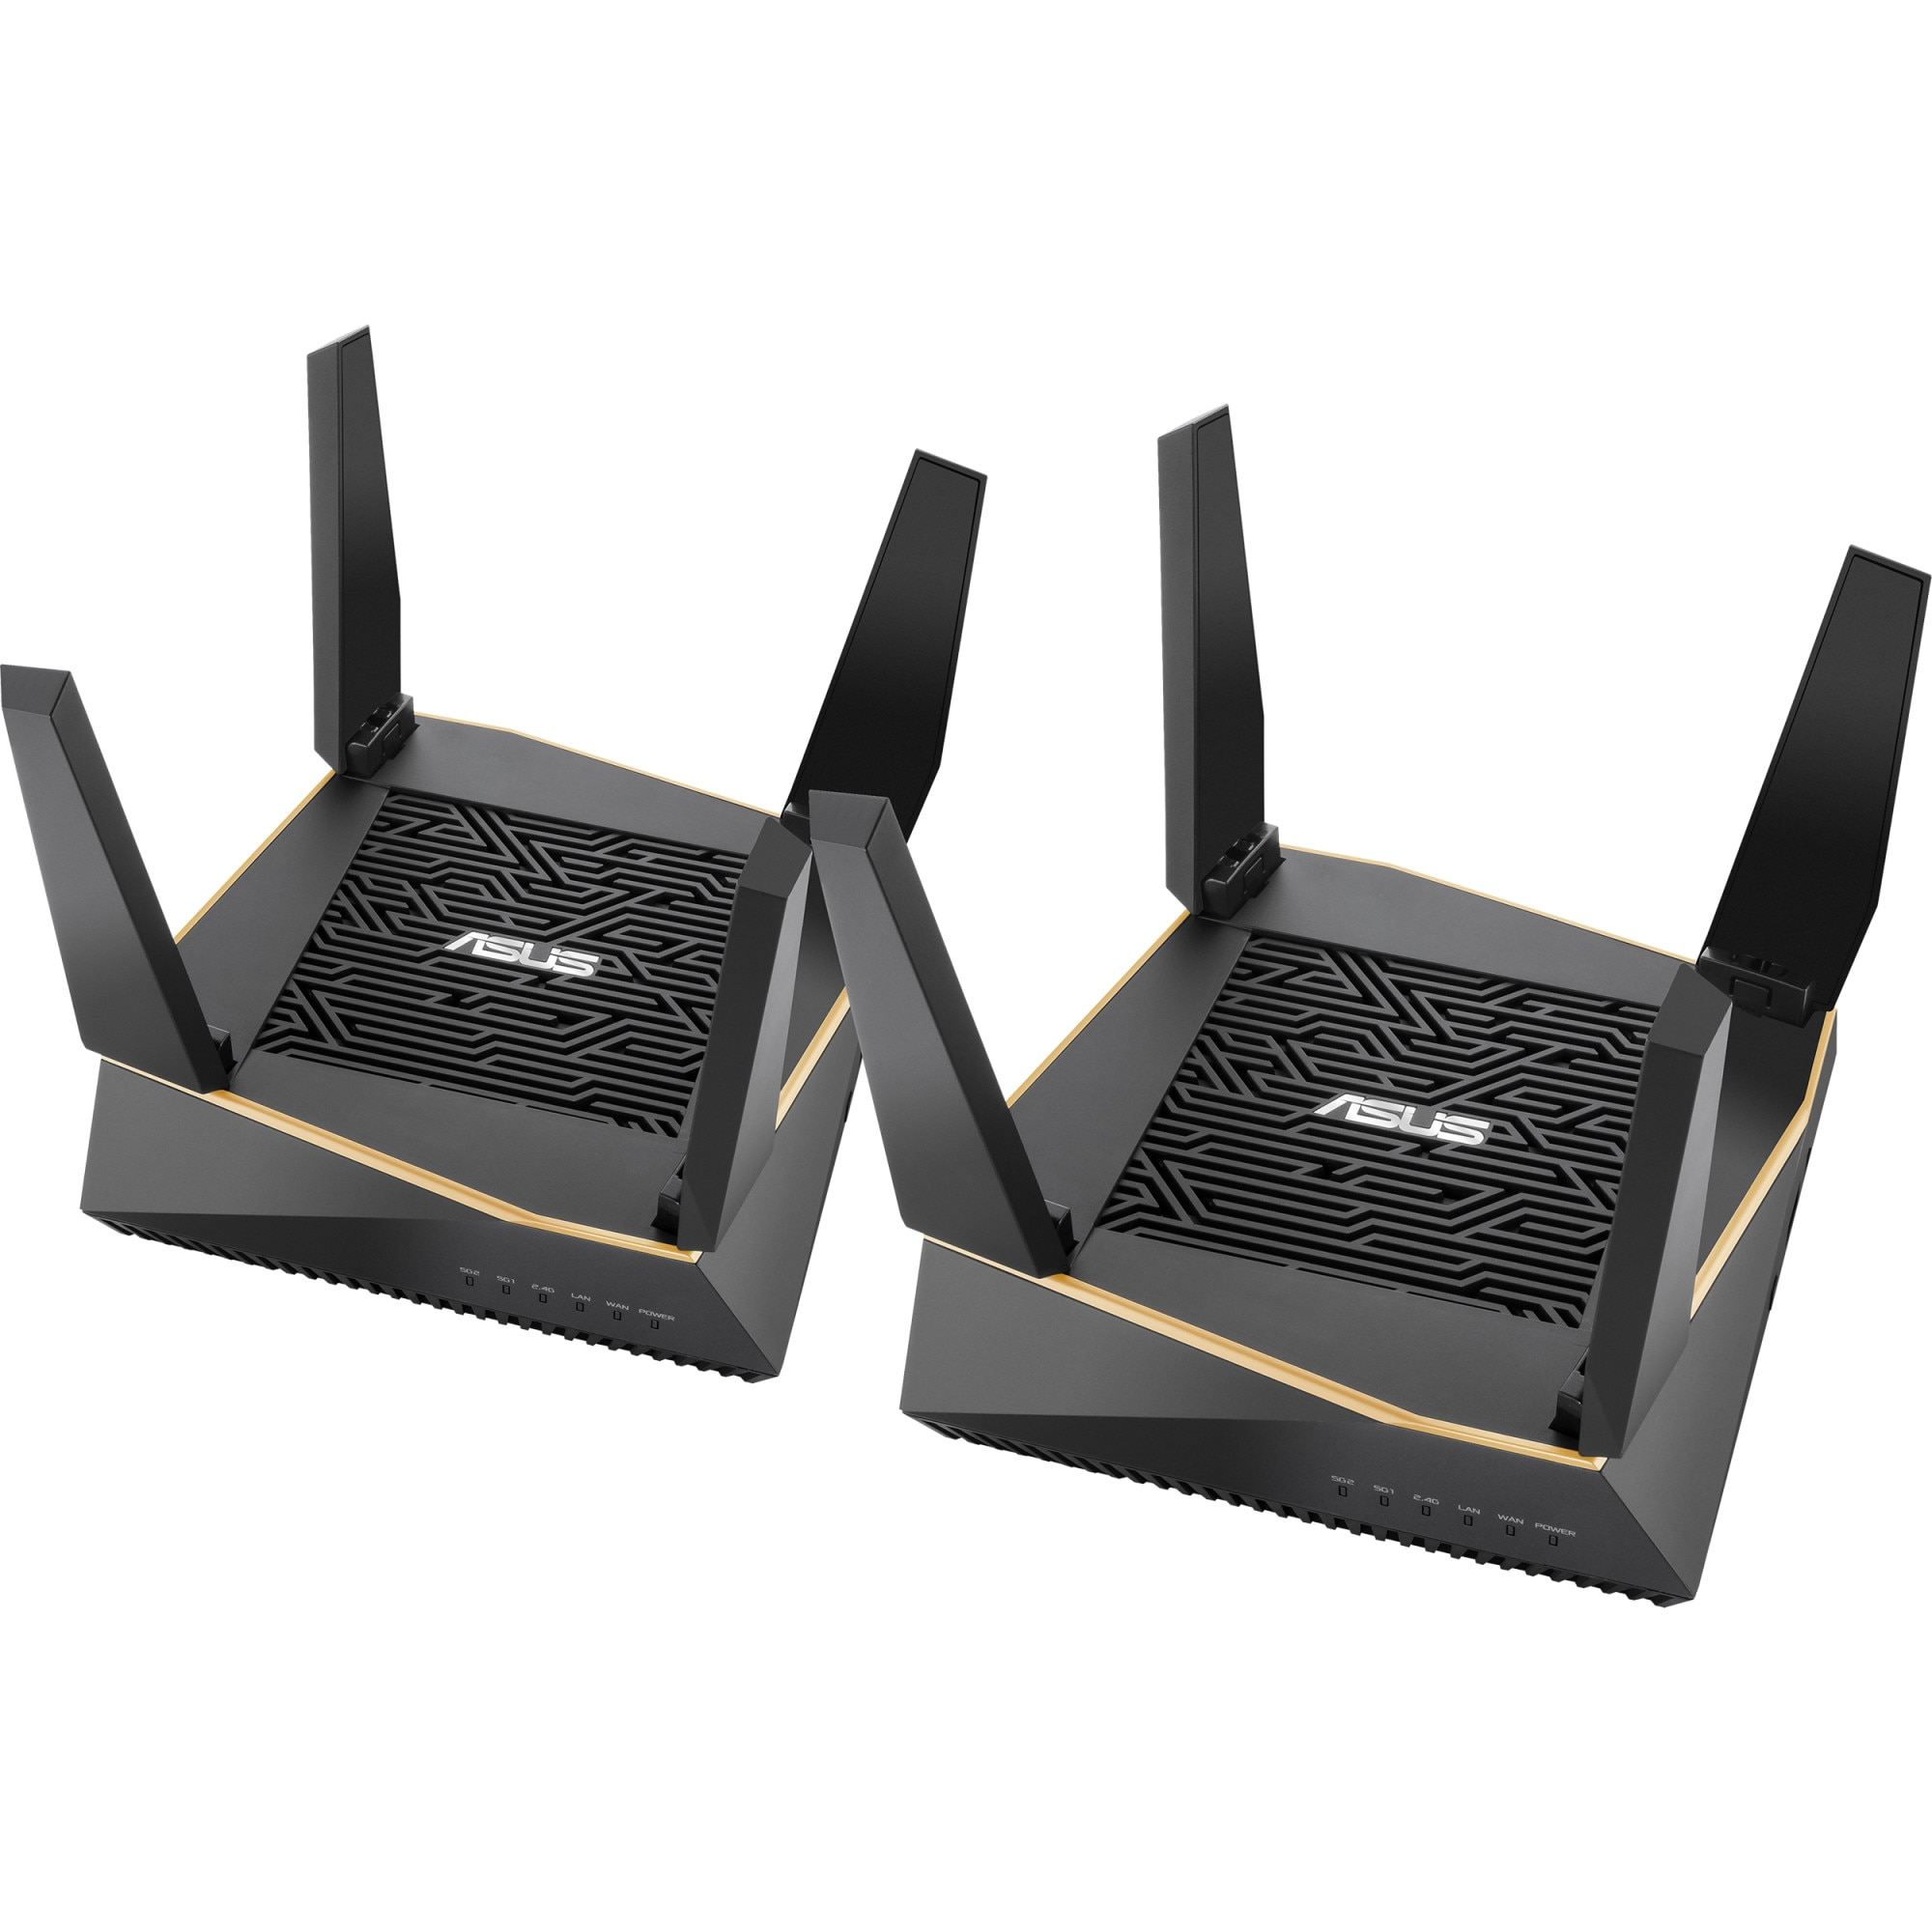 Fotografie ASUS AiMesh AX6100 WiFi System (RT-AX92U 2-Pack), Tri-Band WiFi 6 (802.11ax), Whole Home Mesh for Large, Multistory Homes, Flexible SSID setting, Ethernet backhaul, Life-time Free Network Security